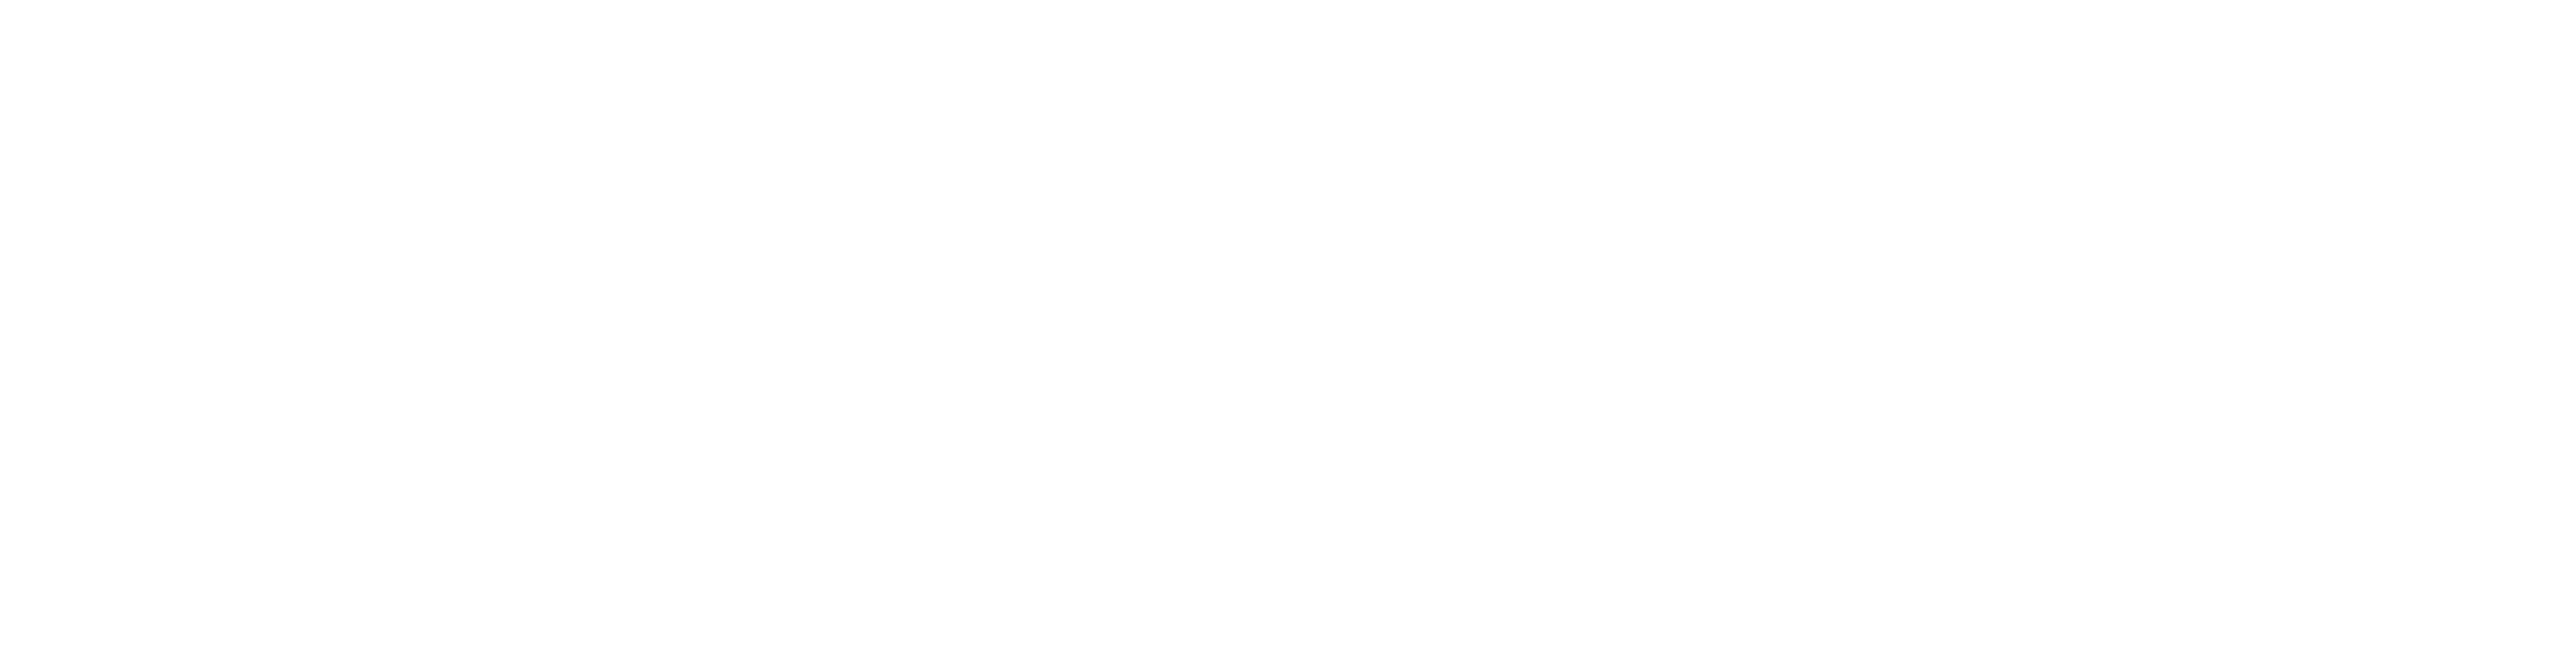 Unit 17: Strength // Conditioning // Health